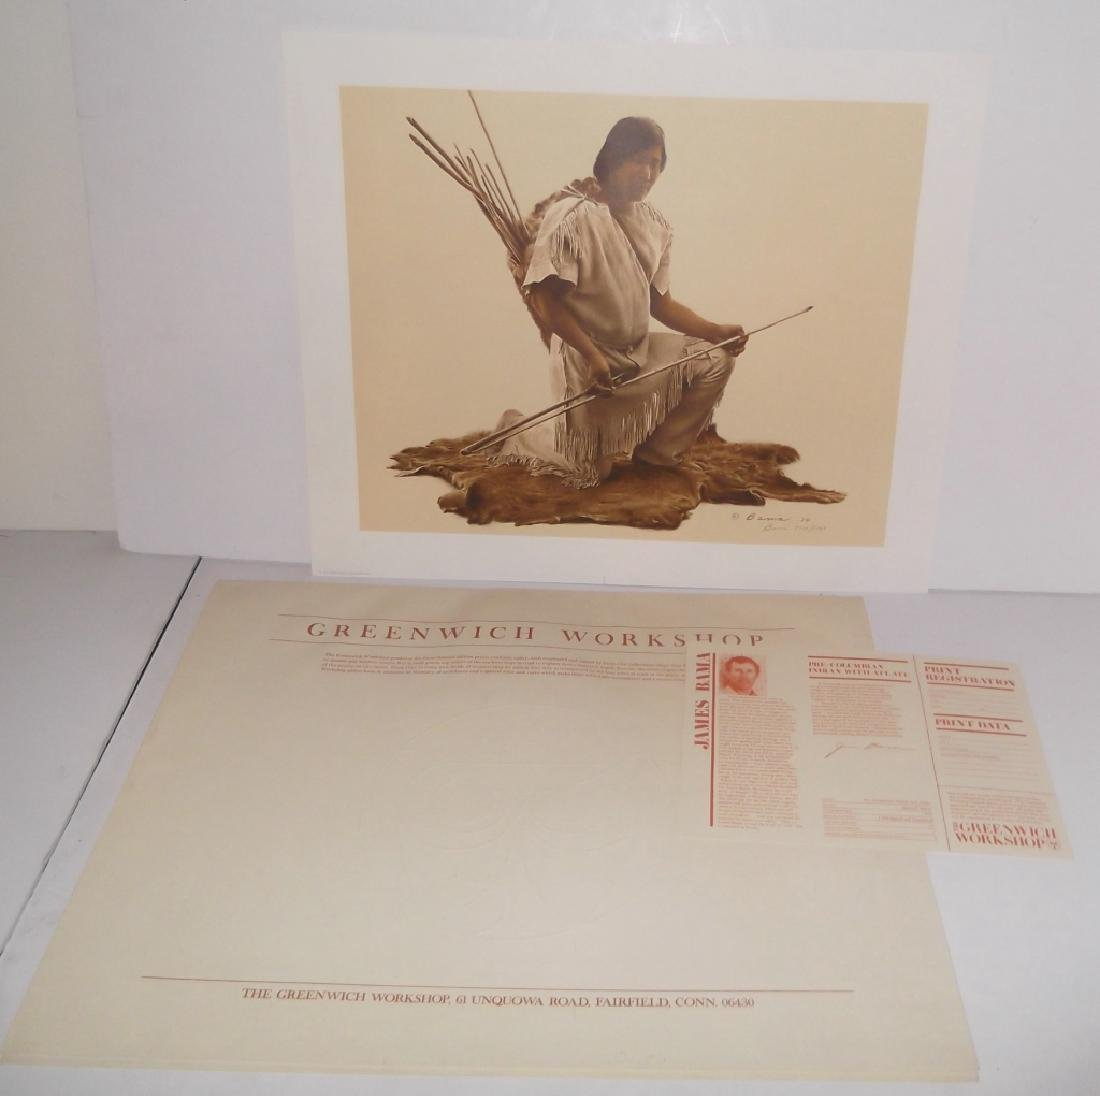 Pre-Columbian Indian with Atlatl lithograph